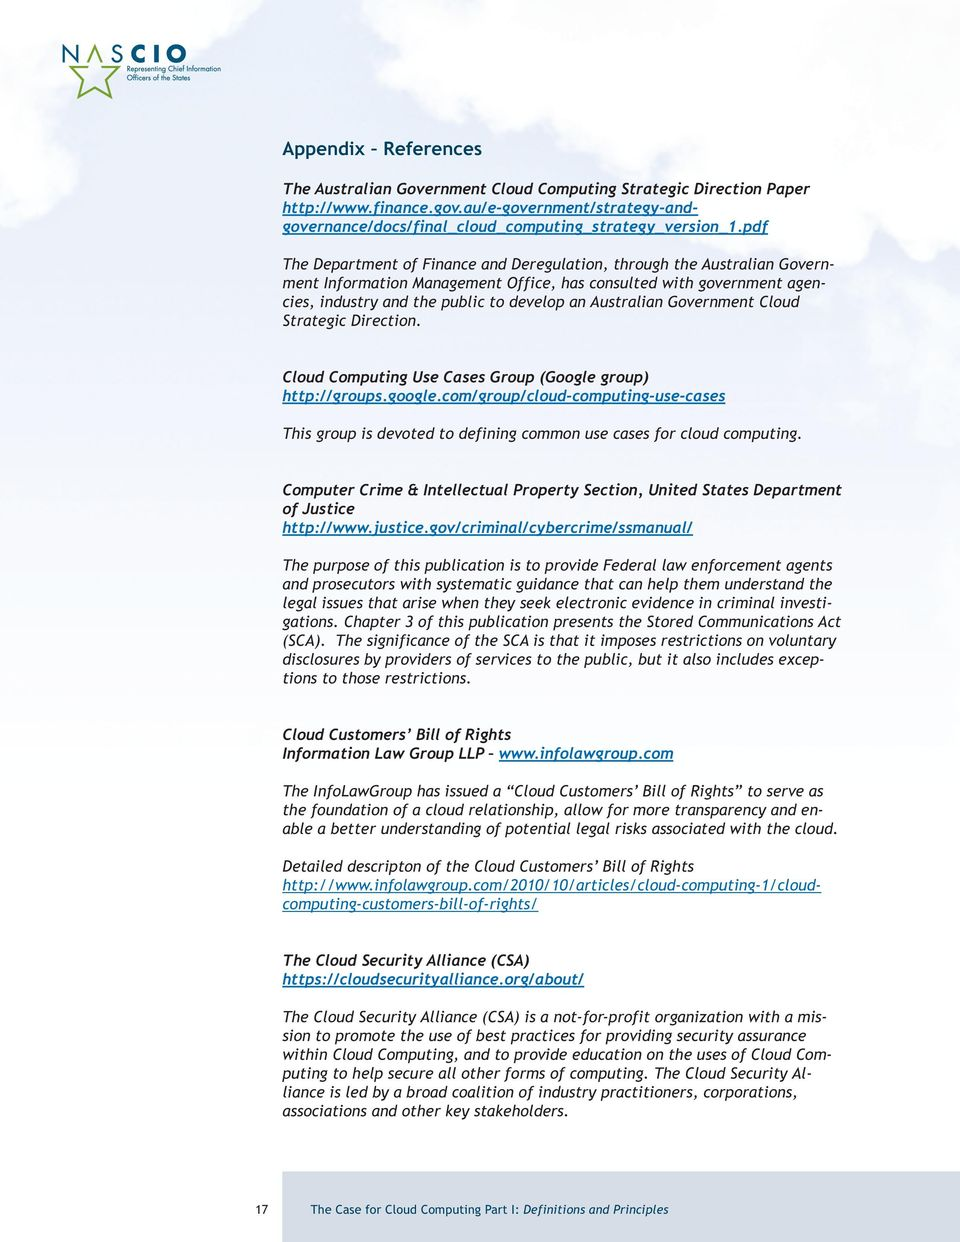 Australian Government Cloud Strategic Direction. Cloud Computing Use Cases Group (Google group) http://groups.google.